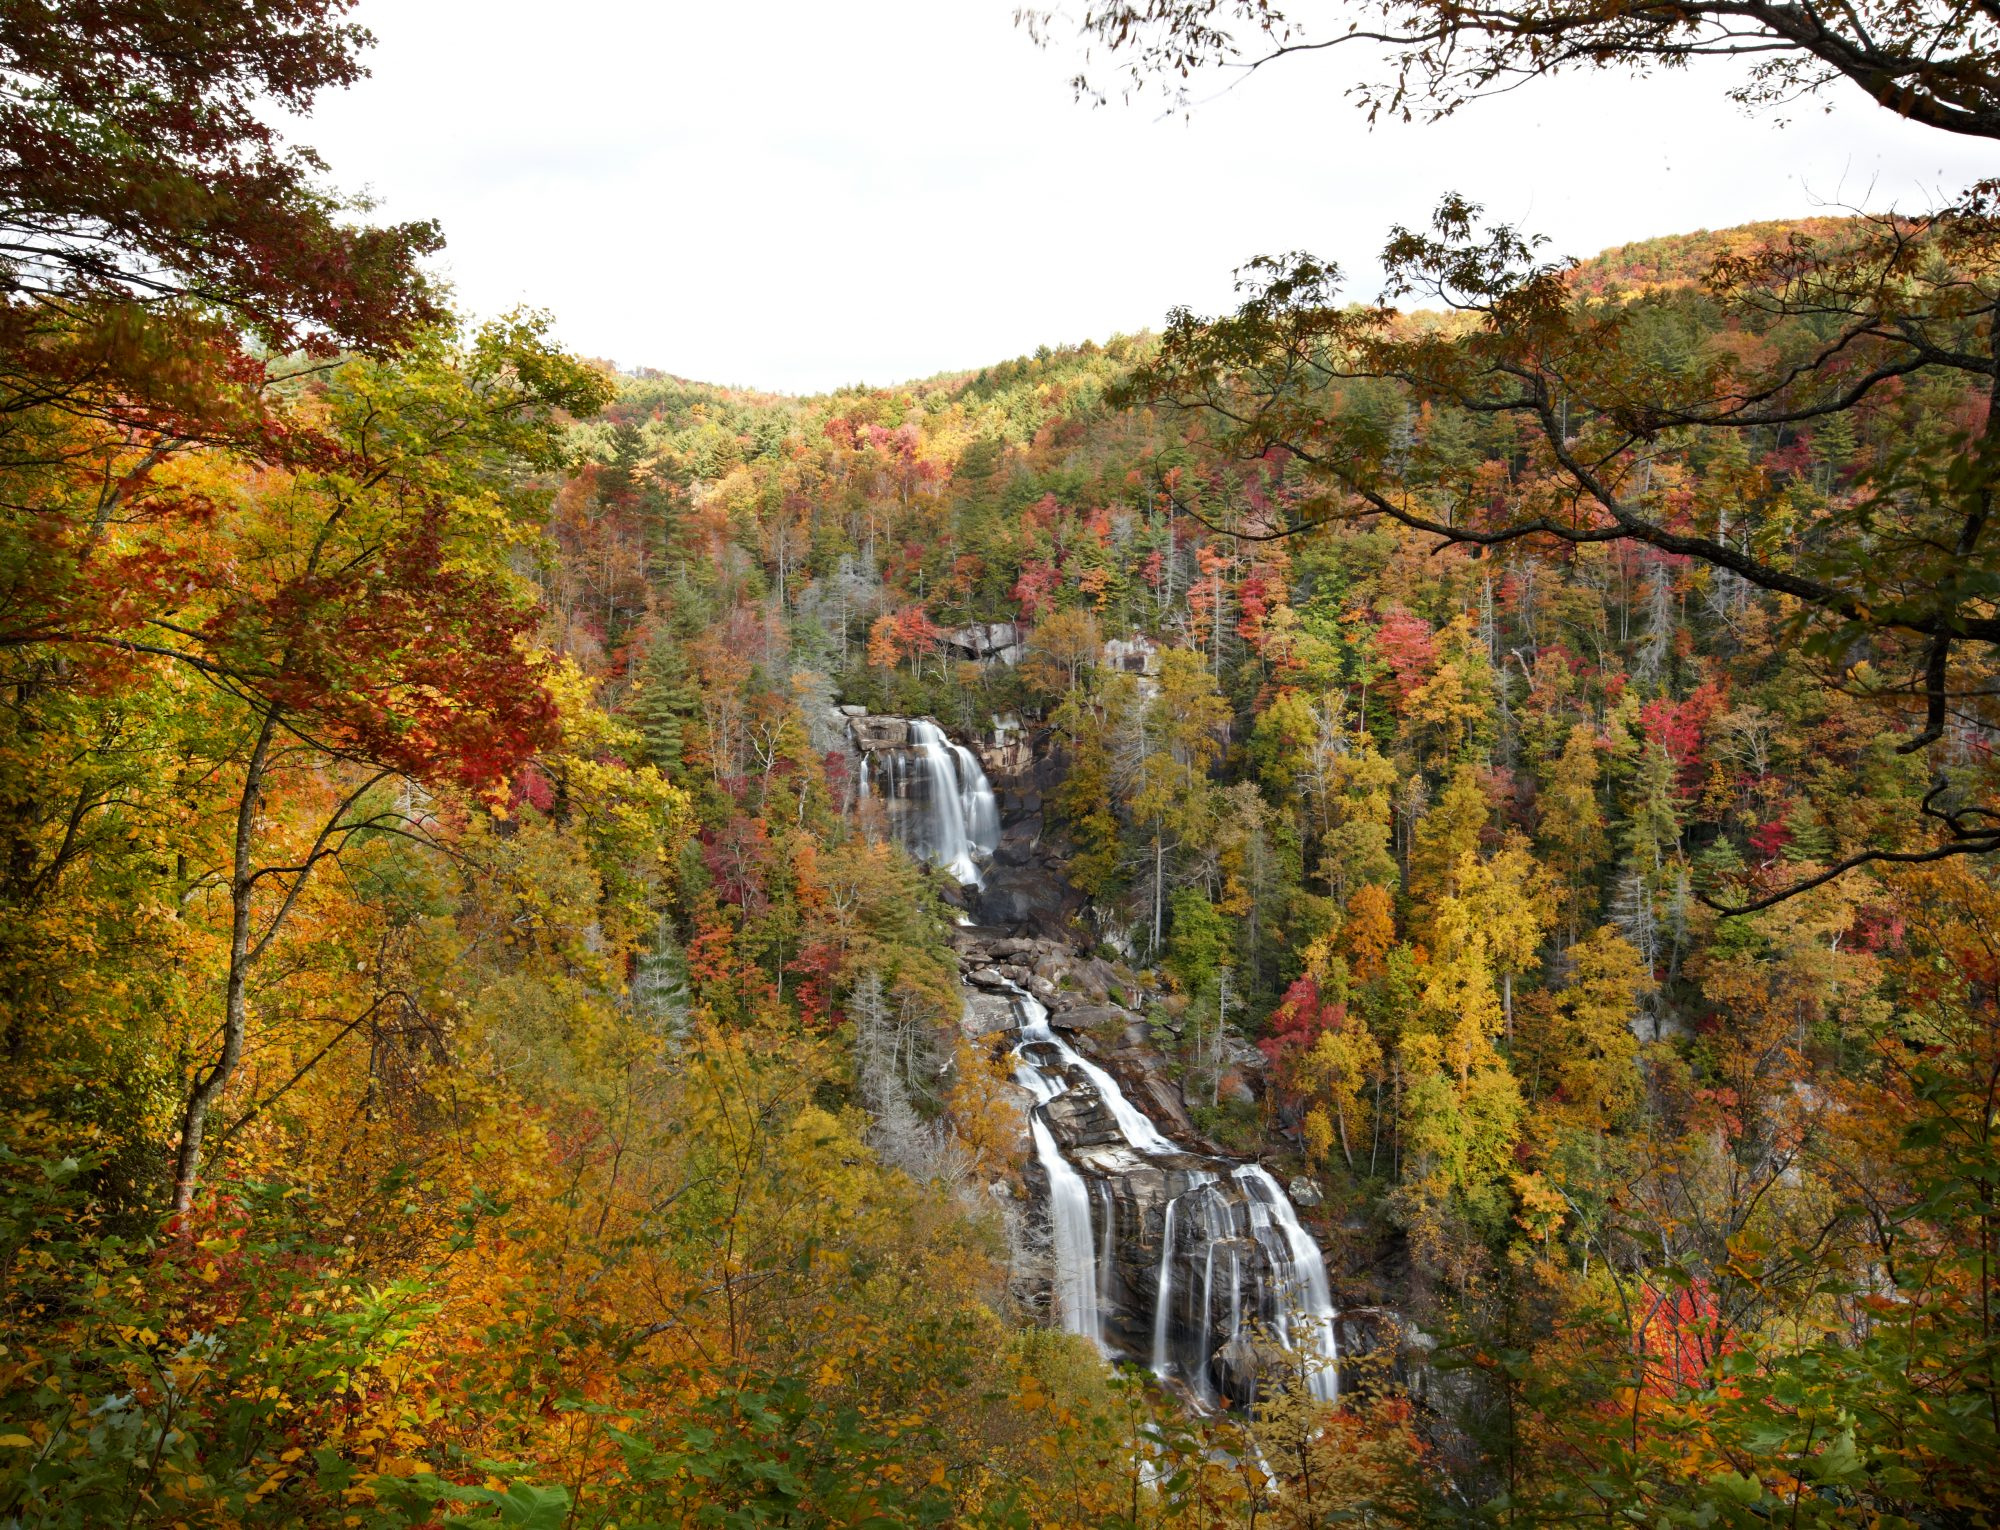 Whitewater Falls (North Carolina)